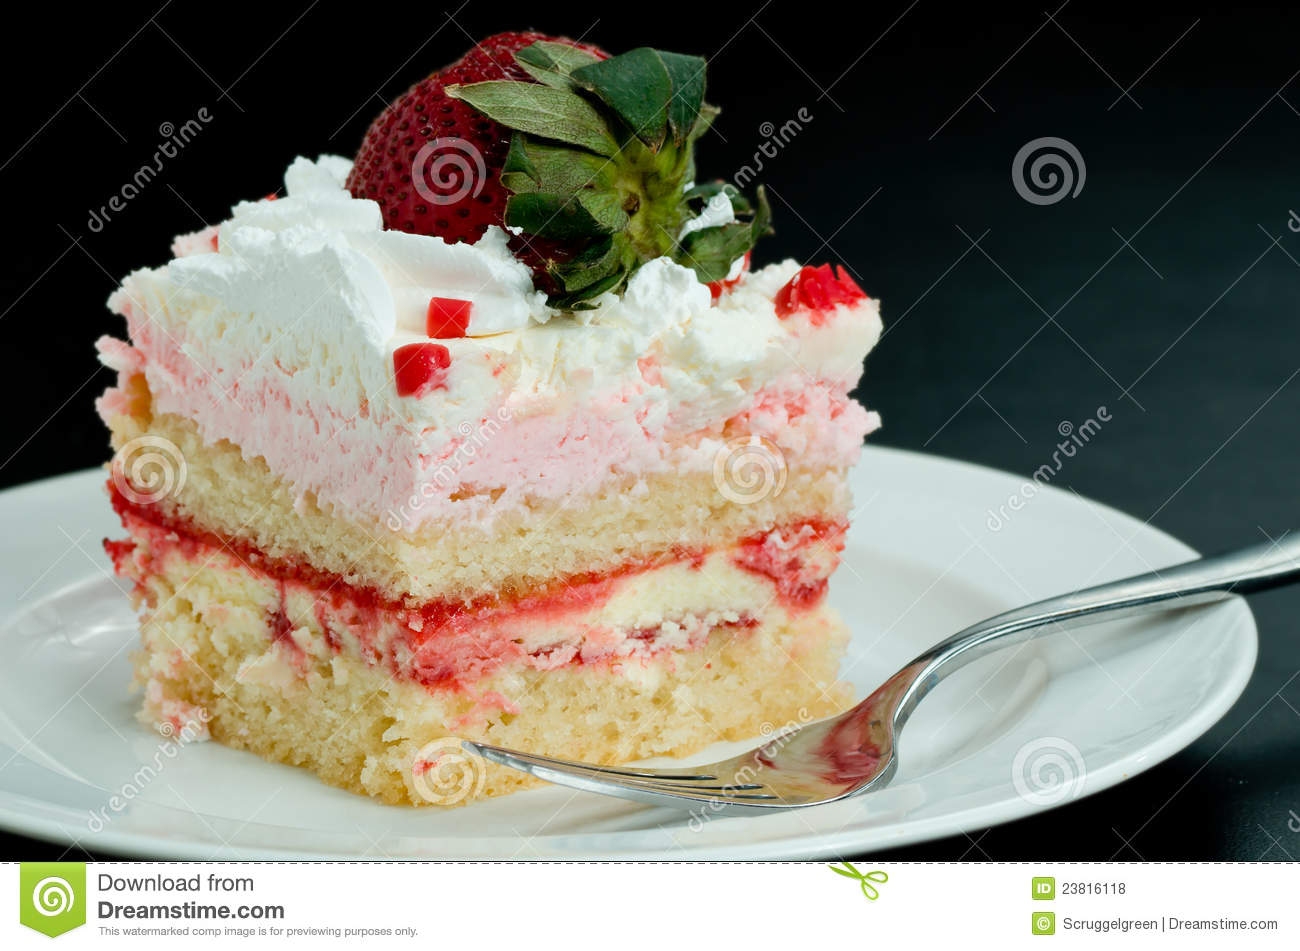 Pink Strawberry Whipped Cream Cake Slice Royalty Free Stock Photos ...